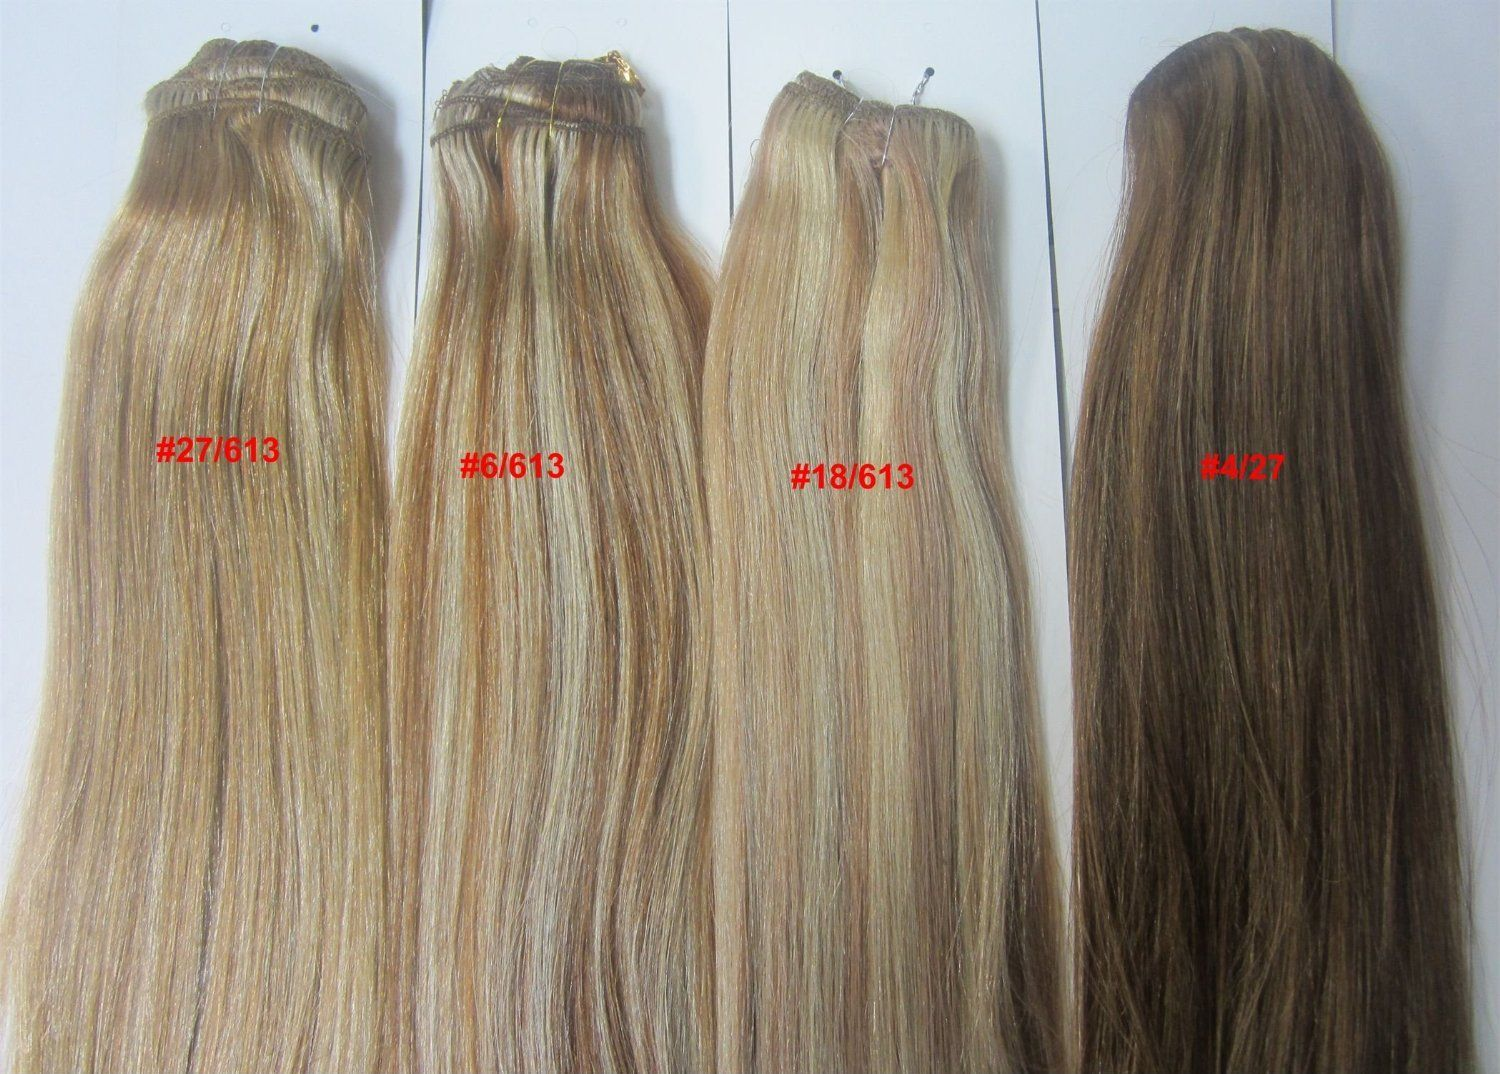 18 Clip In Human Hair Extensions 10pcs 100g Color 6613 Light